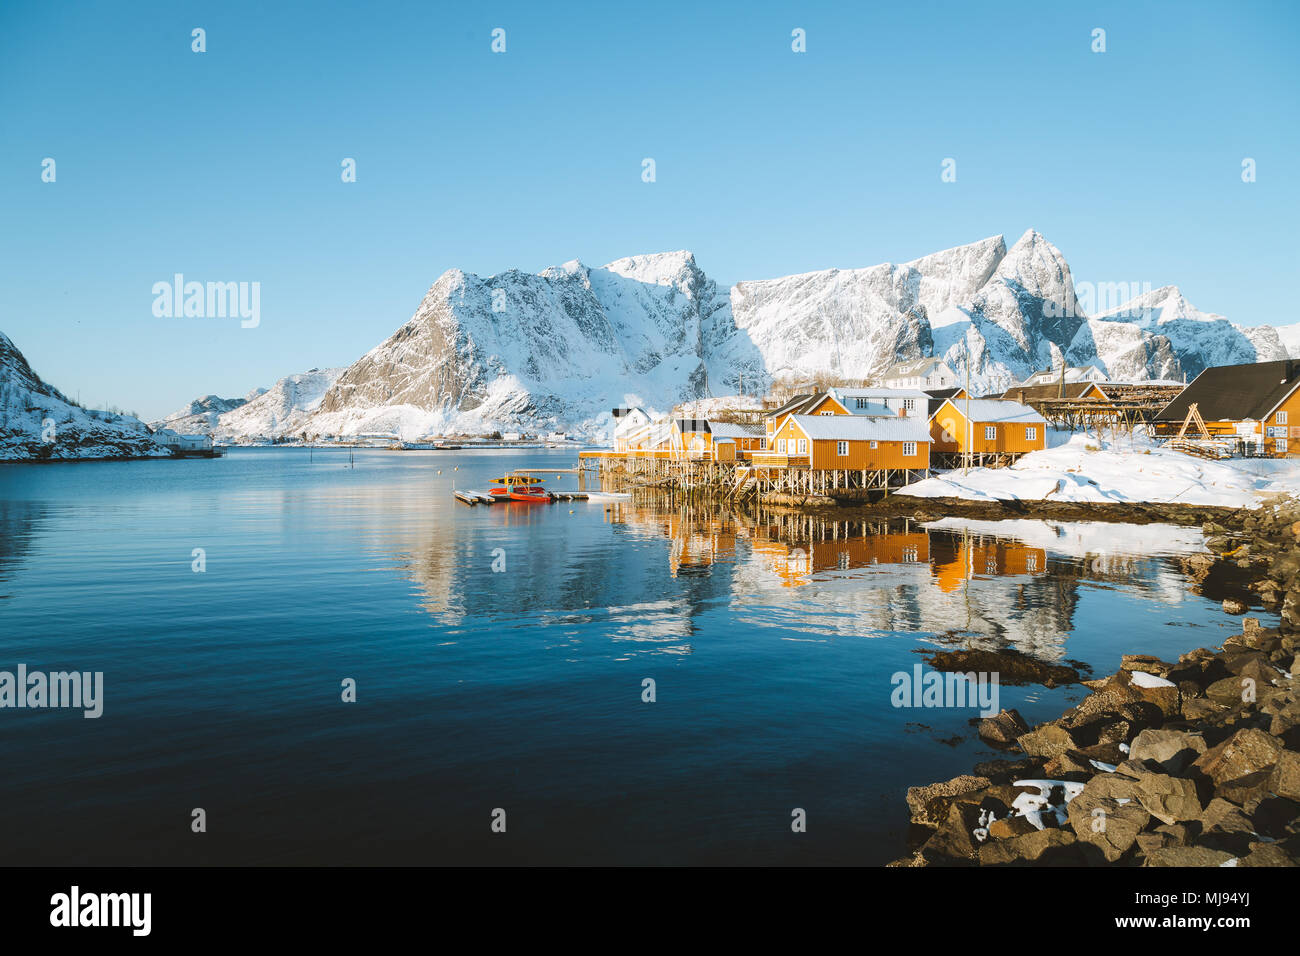 Beautiful Lofoten Islands archipelago winter scenery with traditional yellow fisherman Rorbuer cabins in the historic village of Sakrisoy, Norway - Stock Image